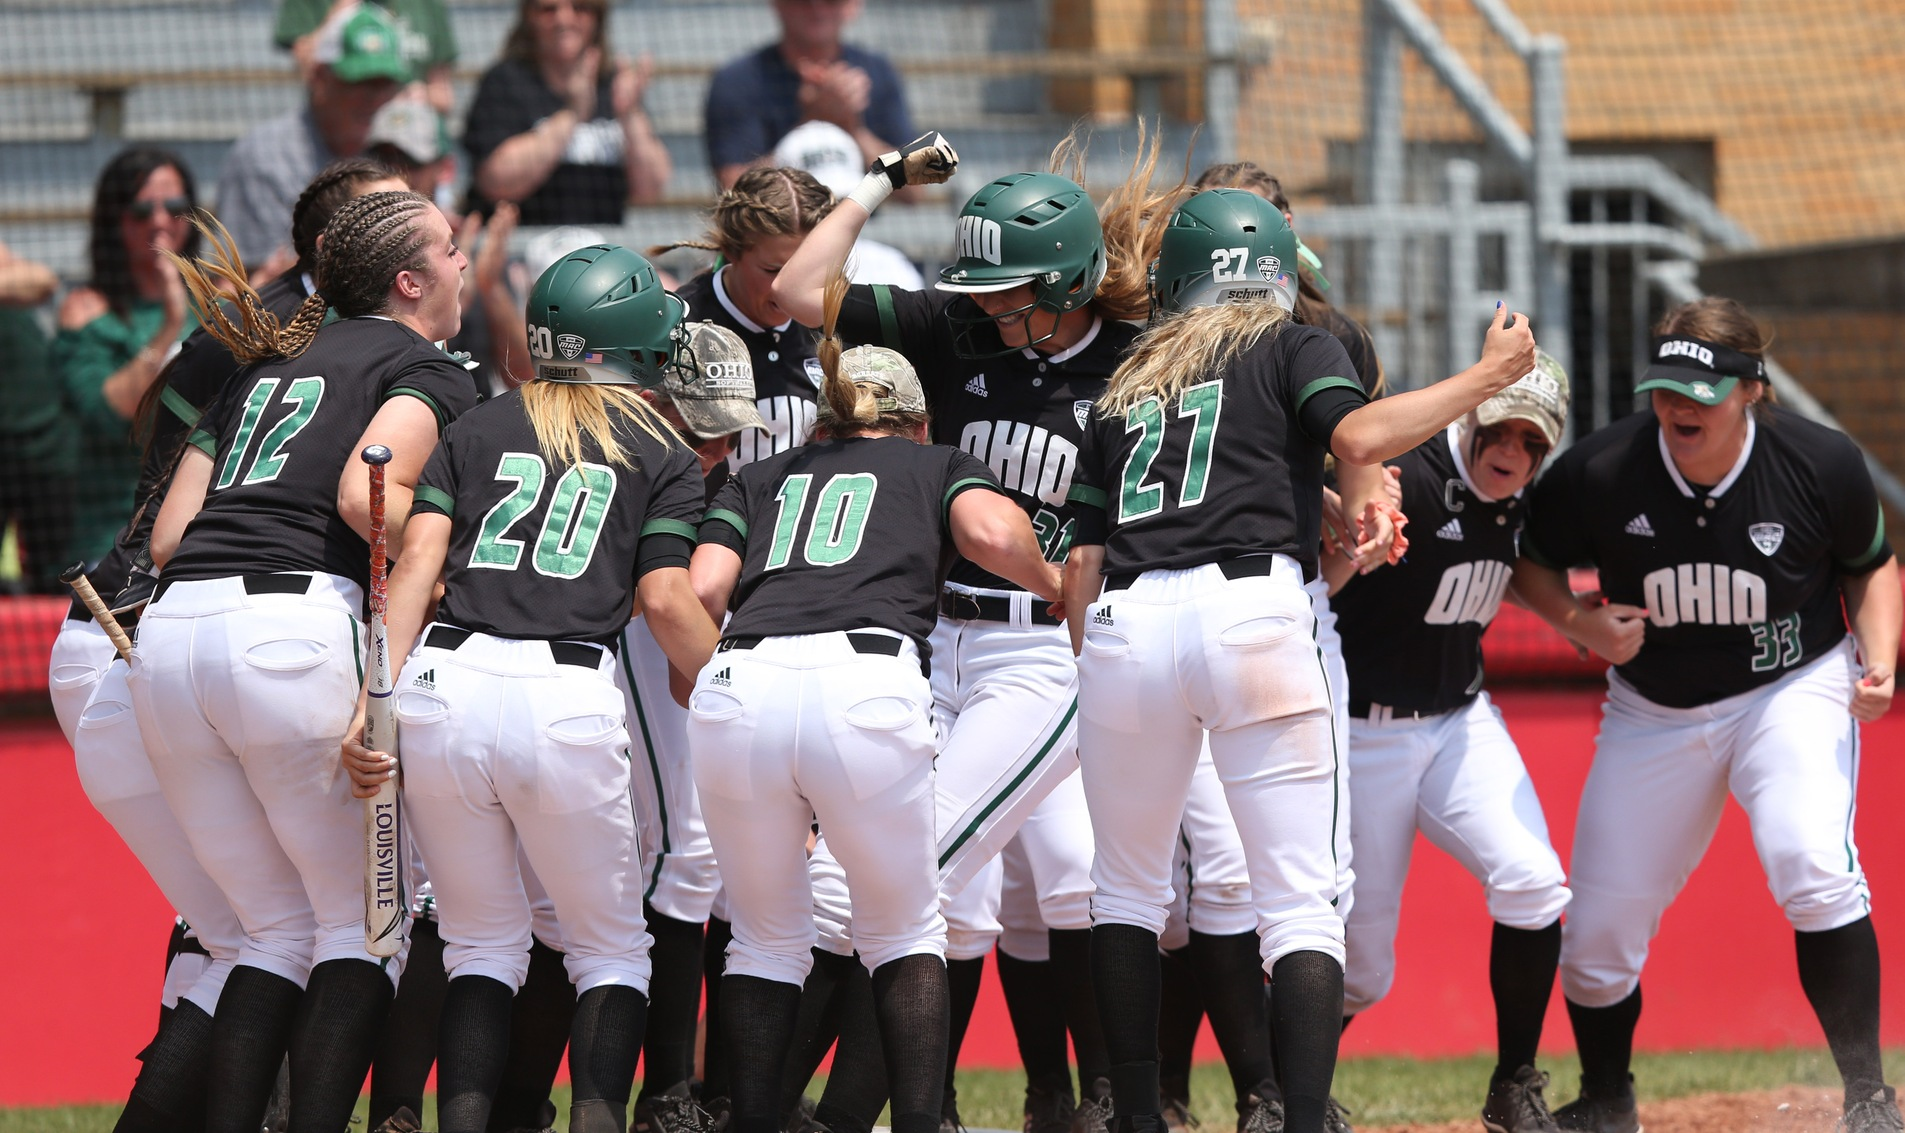 Ohio Softball Set to Open Knoxville Regional Against James Madison